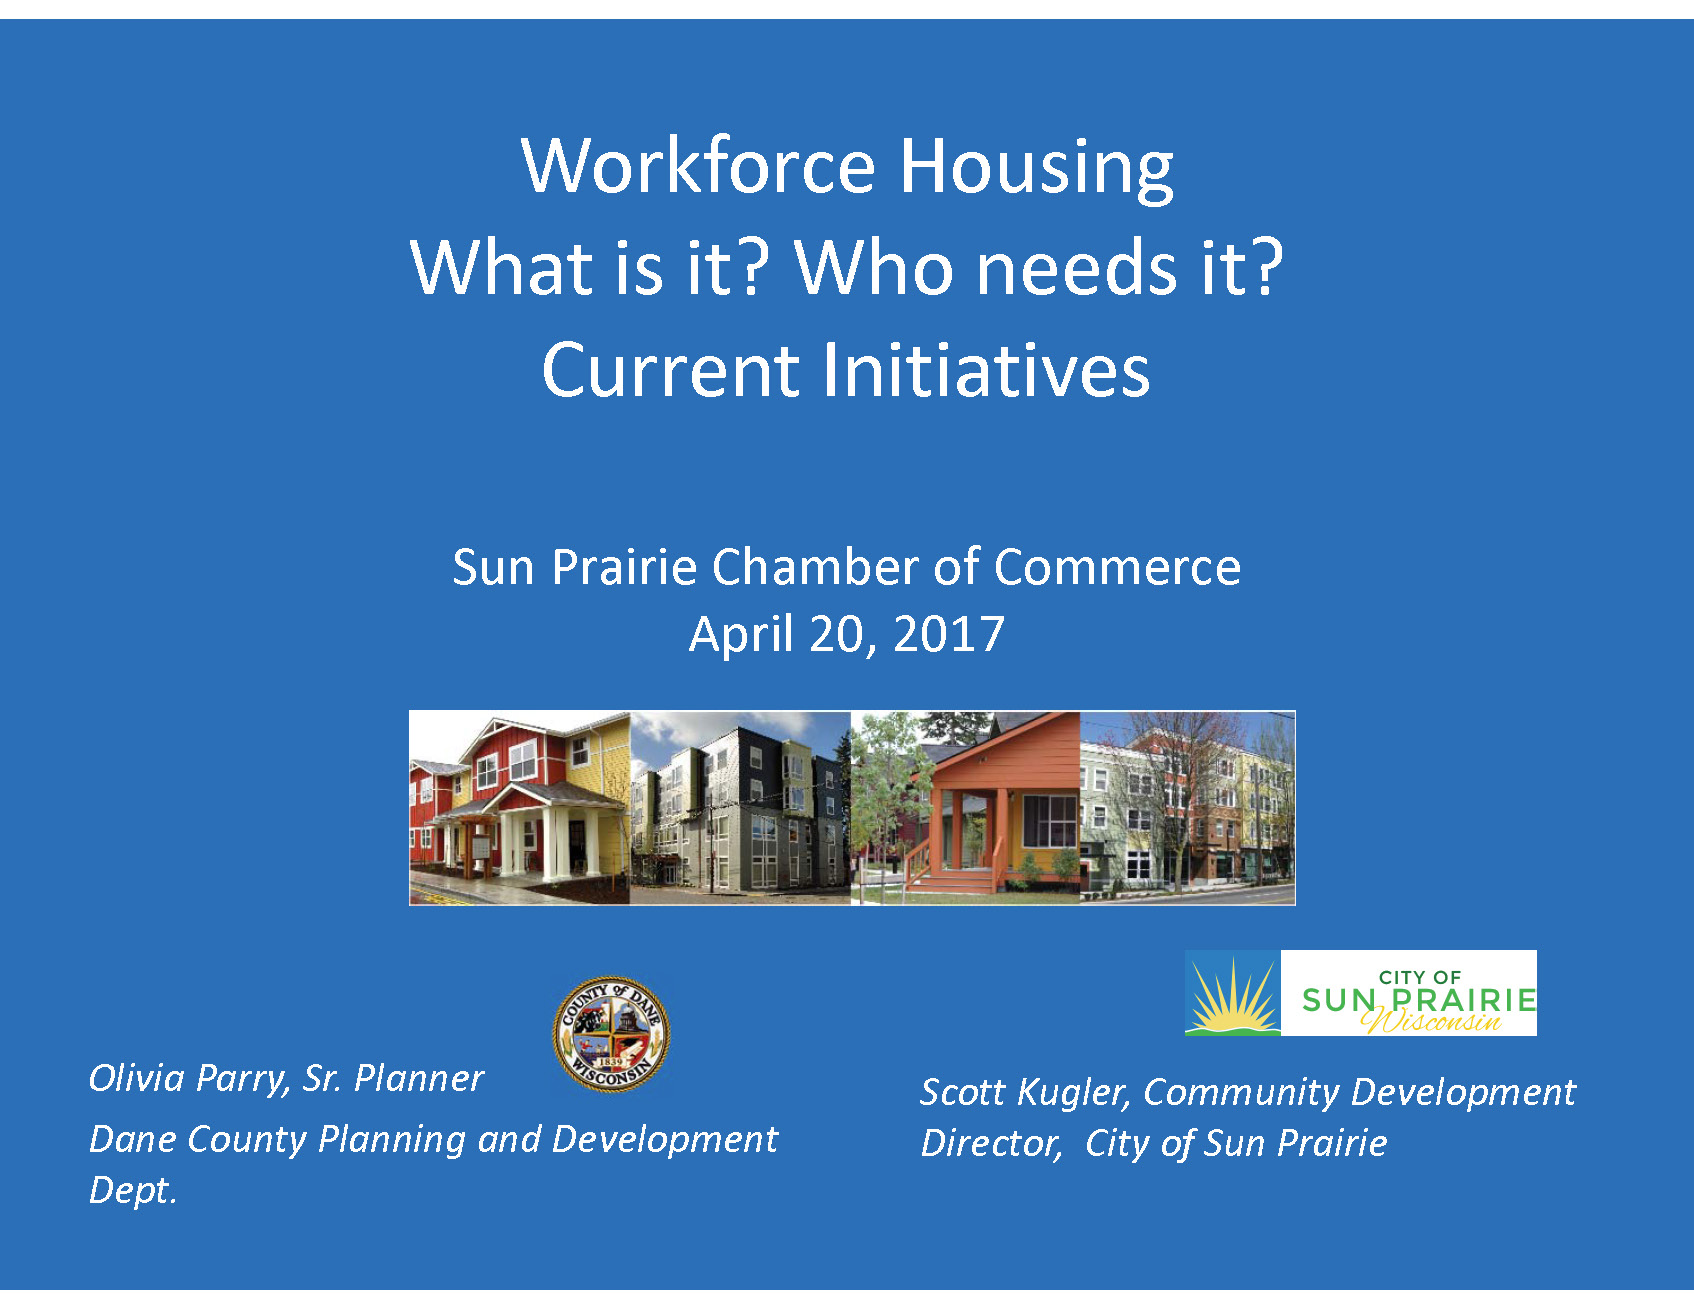 Workforce Housing